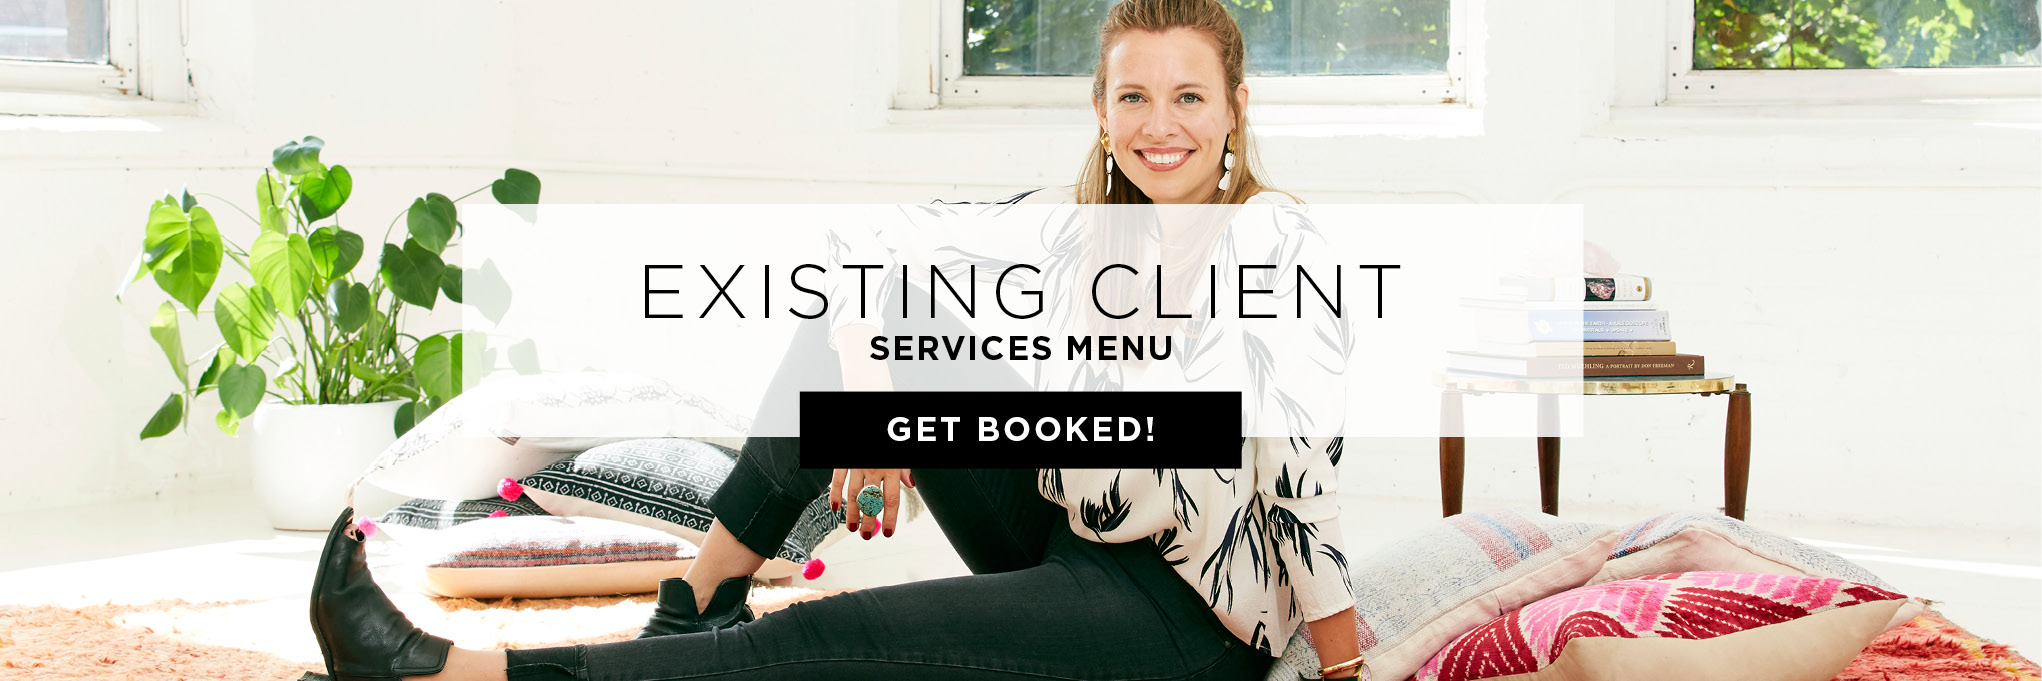 BANNER_EXISTING_BOOKED